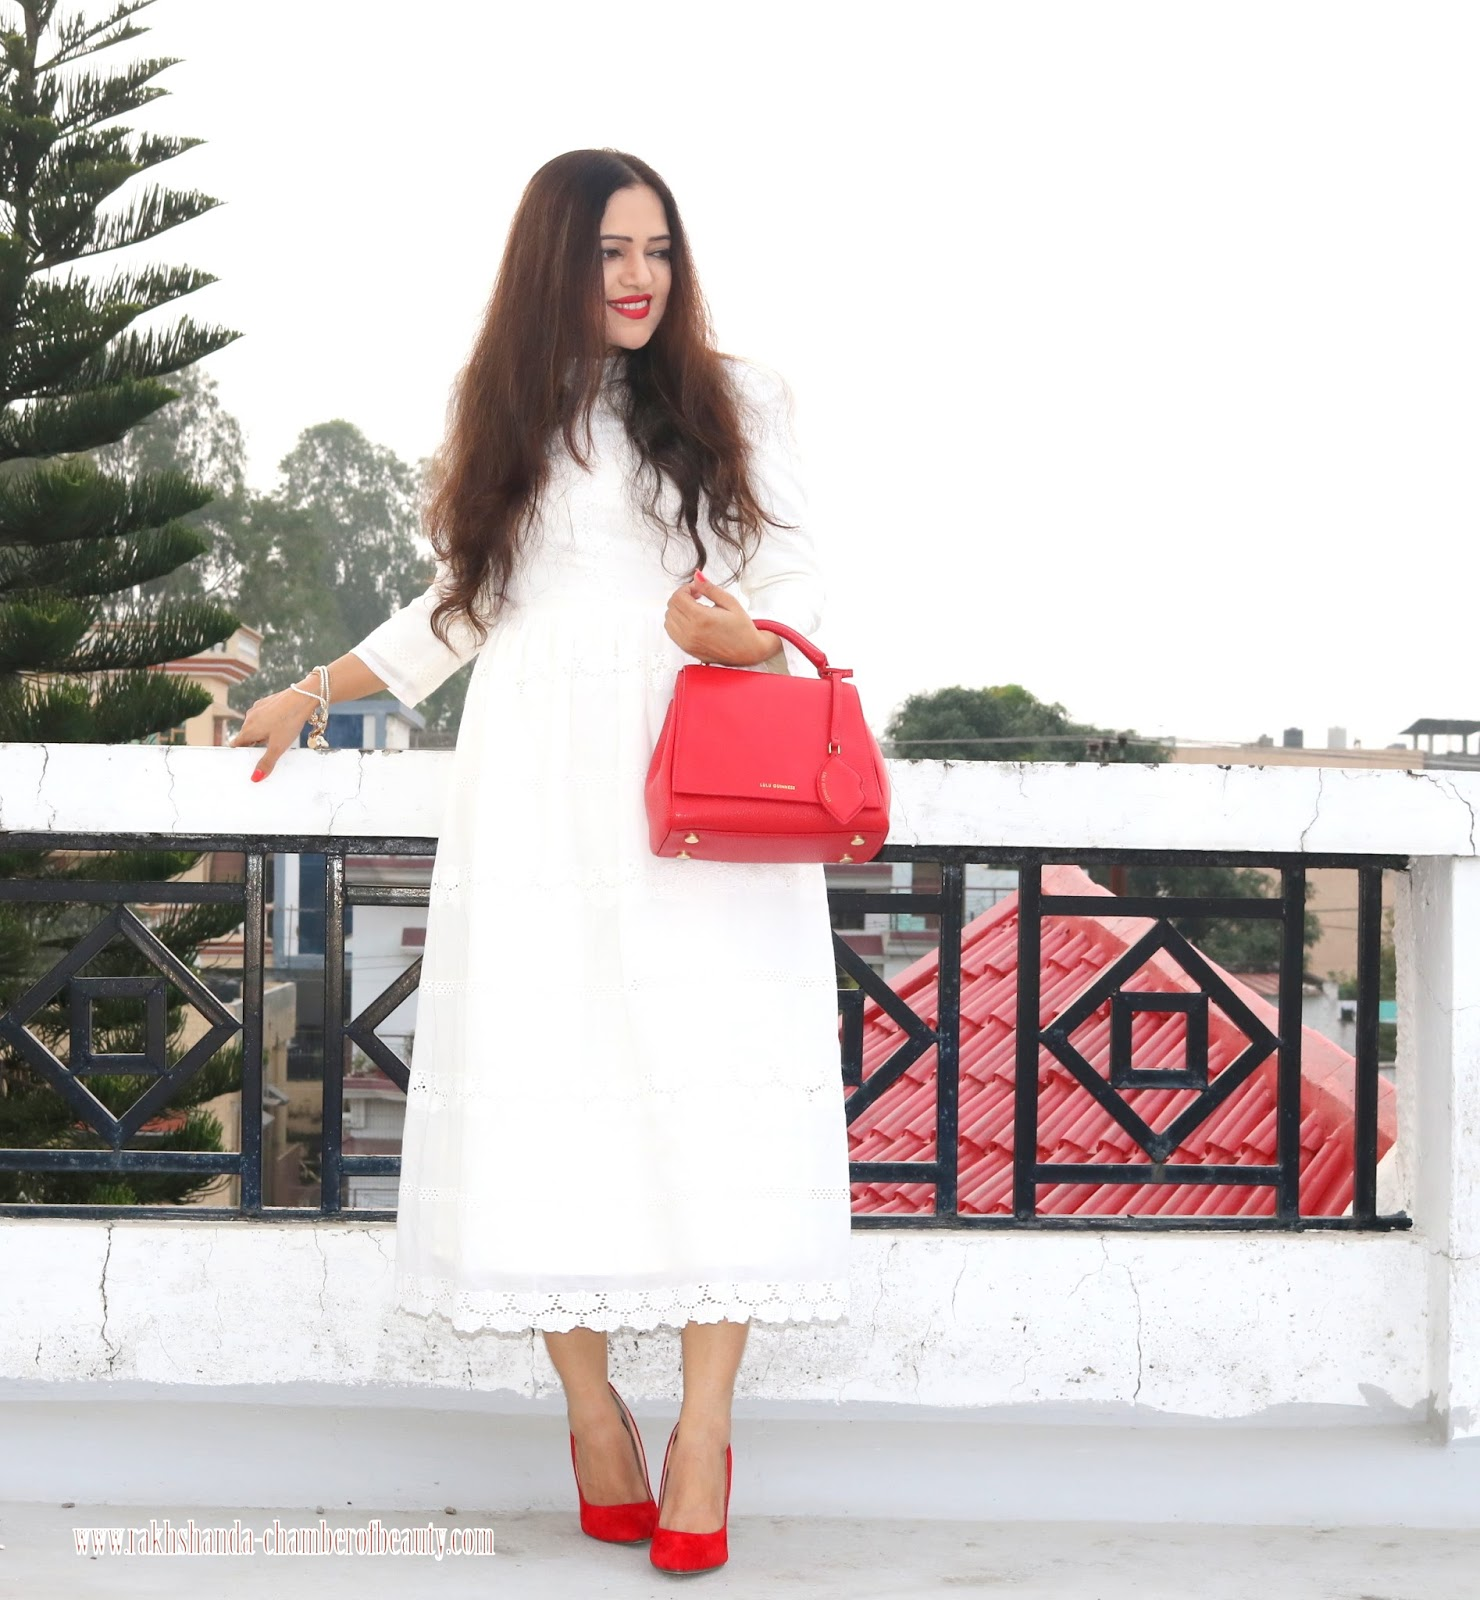 White Lace Dress in Fall